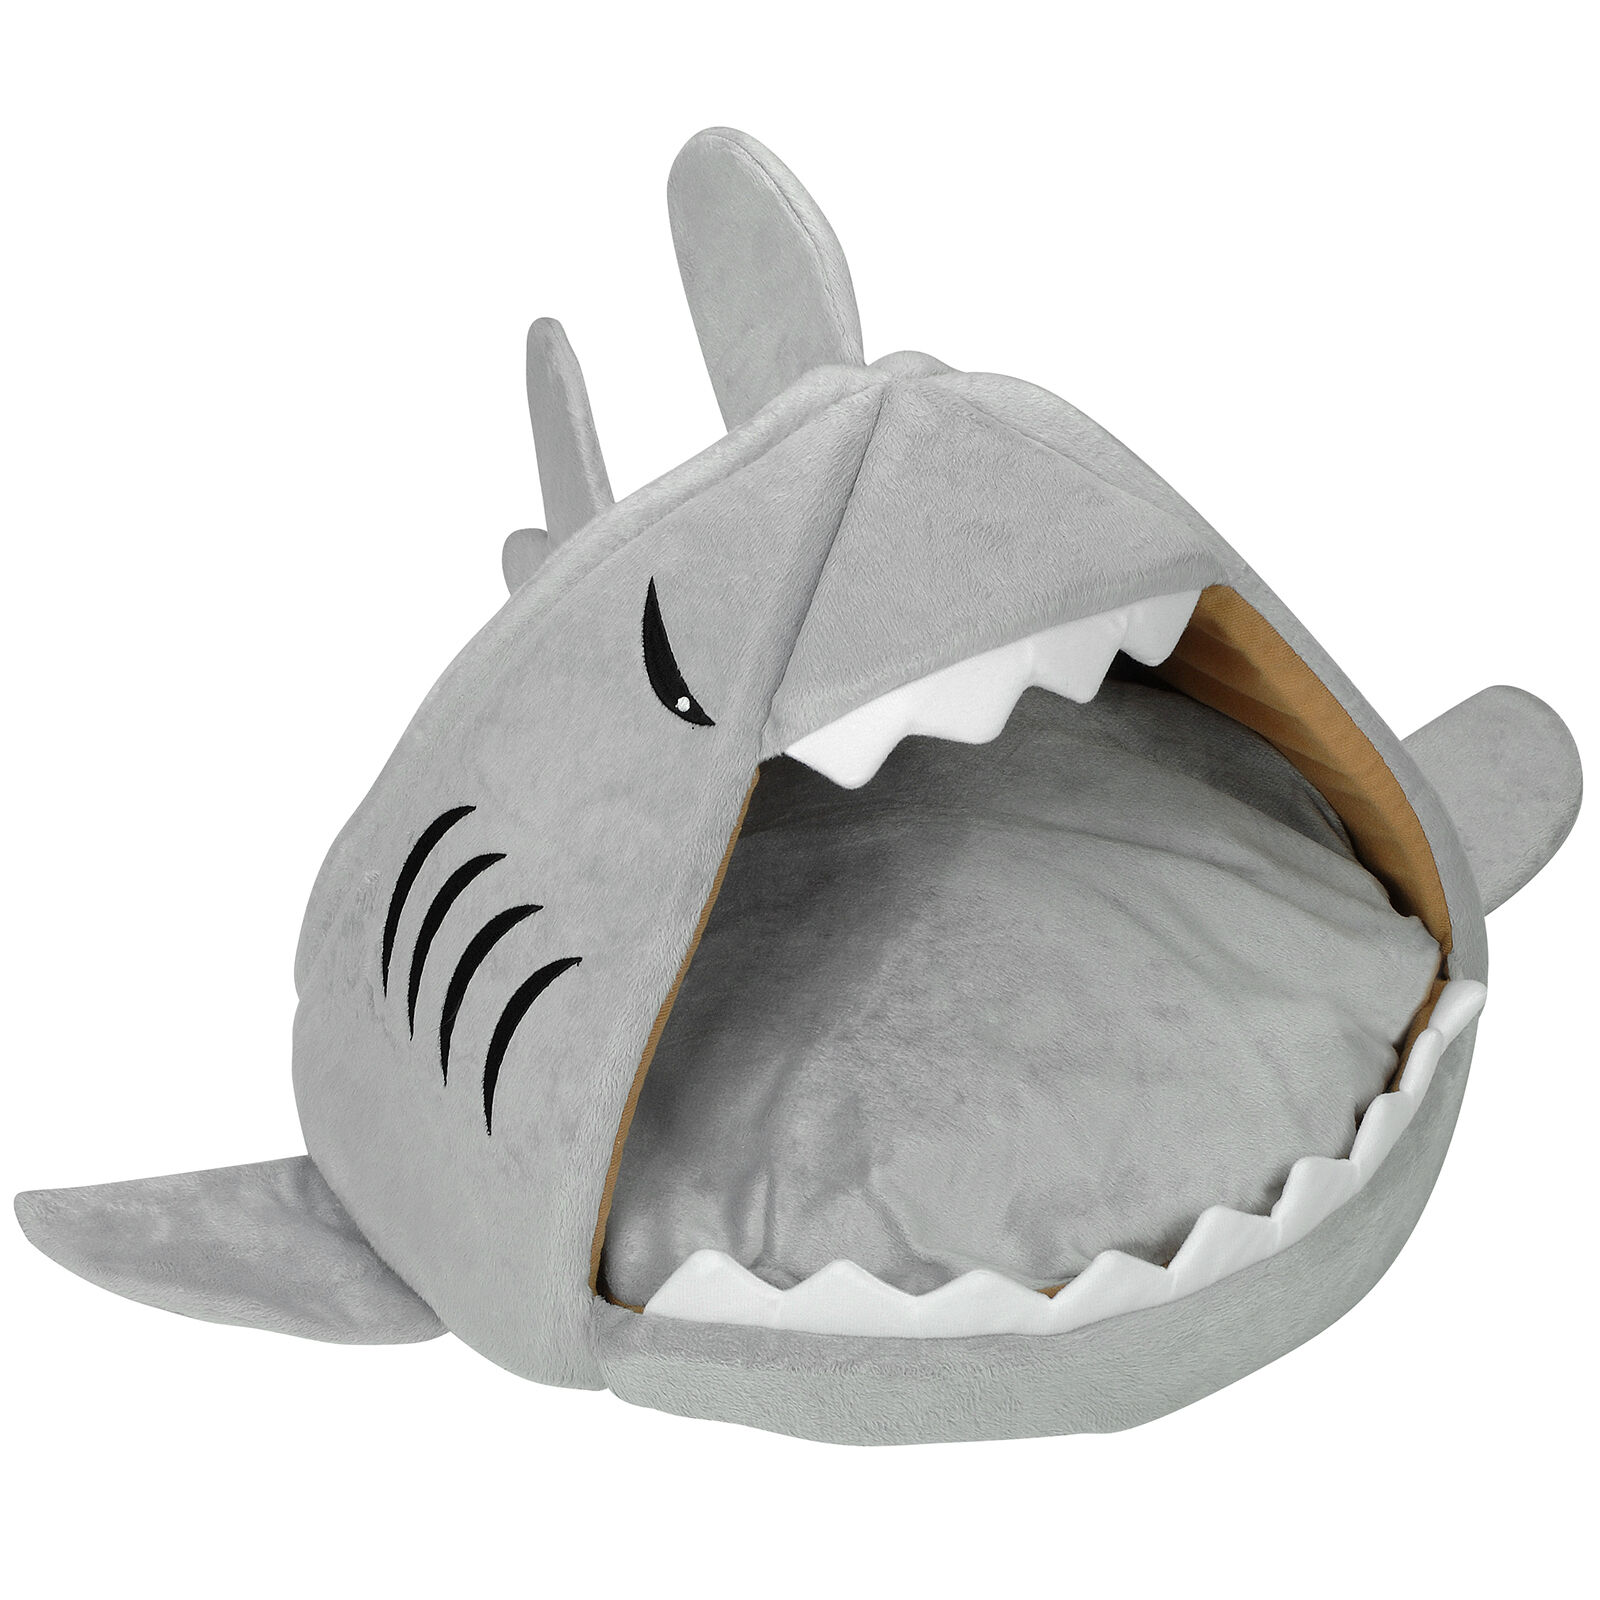 Grey Shark Mouth Warm Pet Bed For Cat/kitten/puppy House Nest Cave Igloo Snug